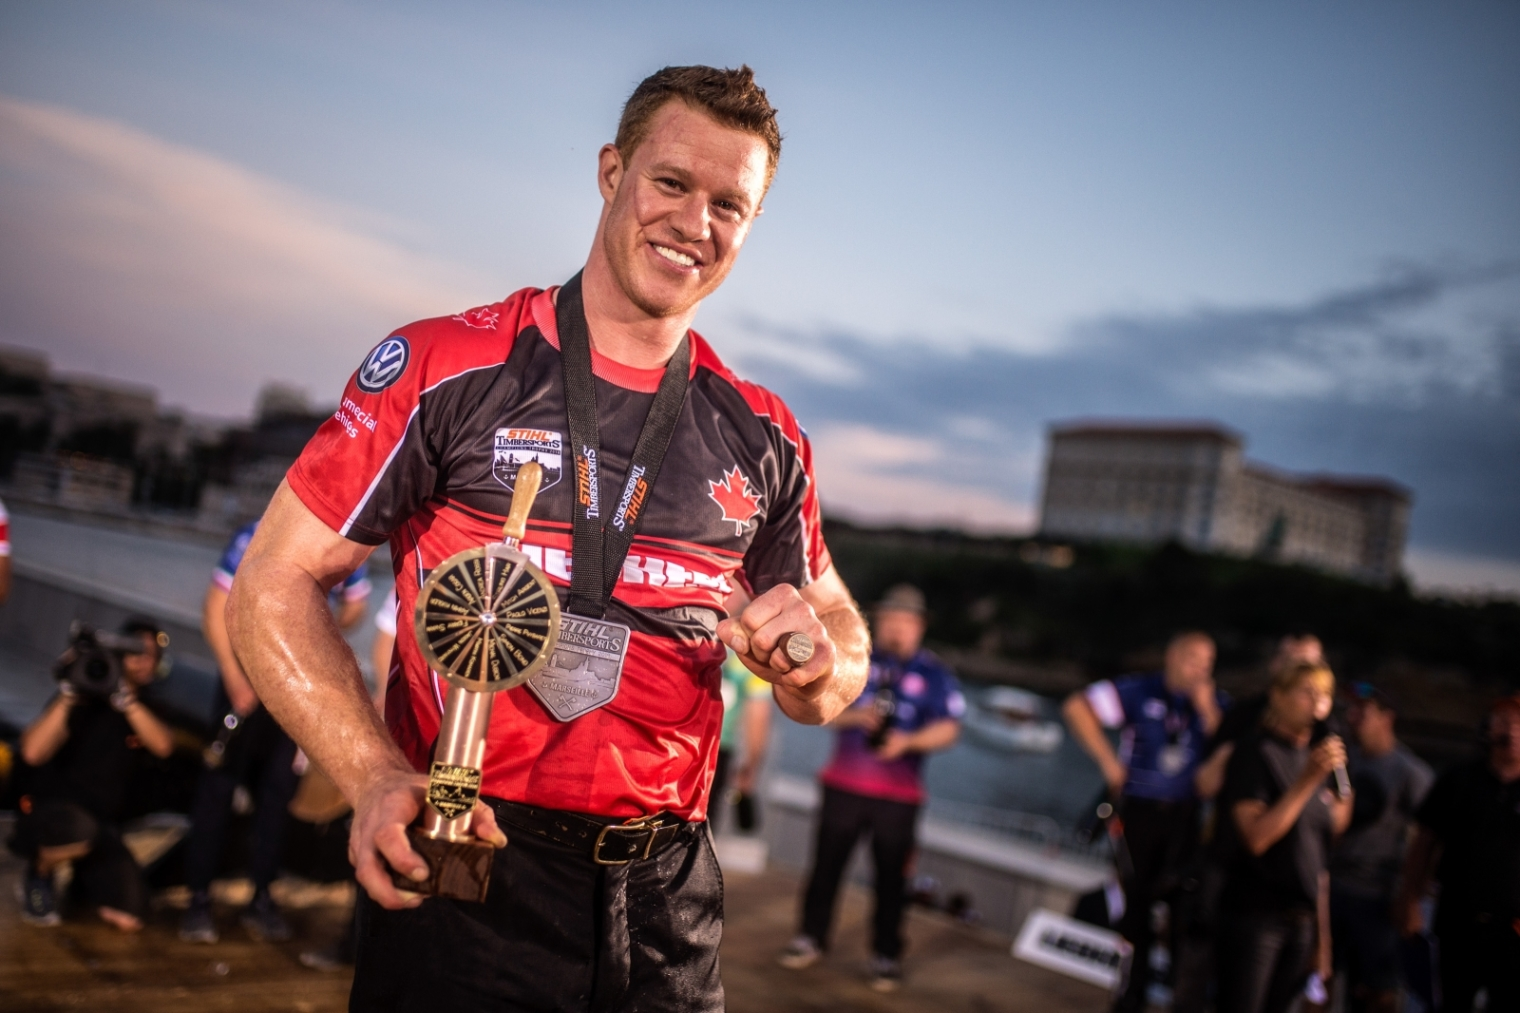 Stirling Hart of Canada poses for a photograph after winning the Stihl TIMBERSPORTS® Champions Trophy in Marseille, France on May 26, 2018.